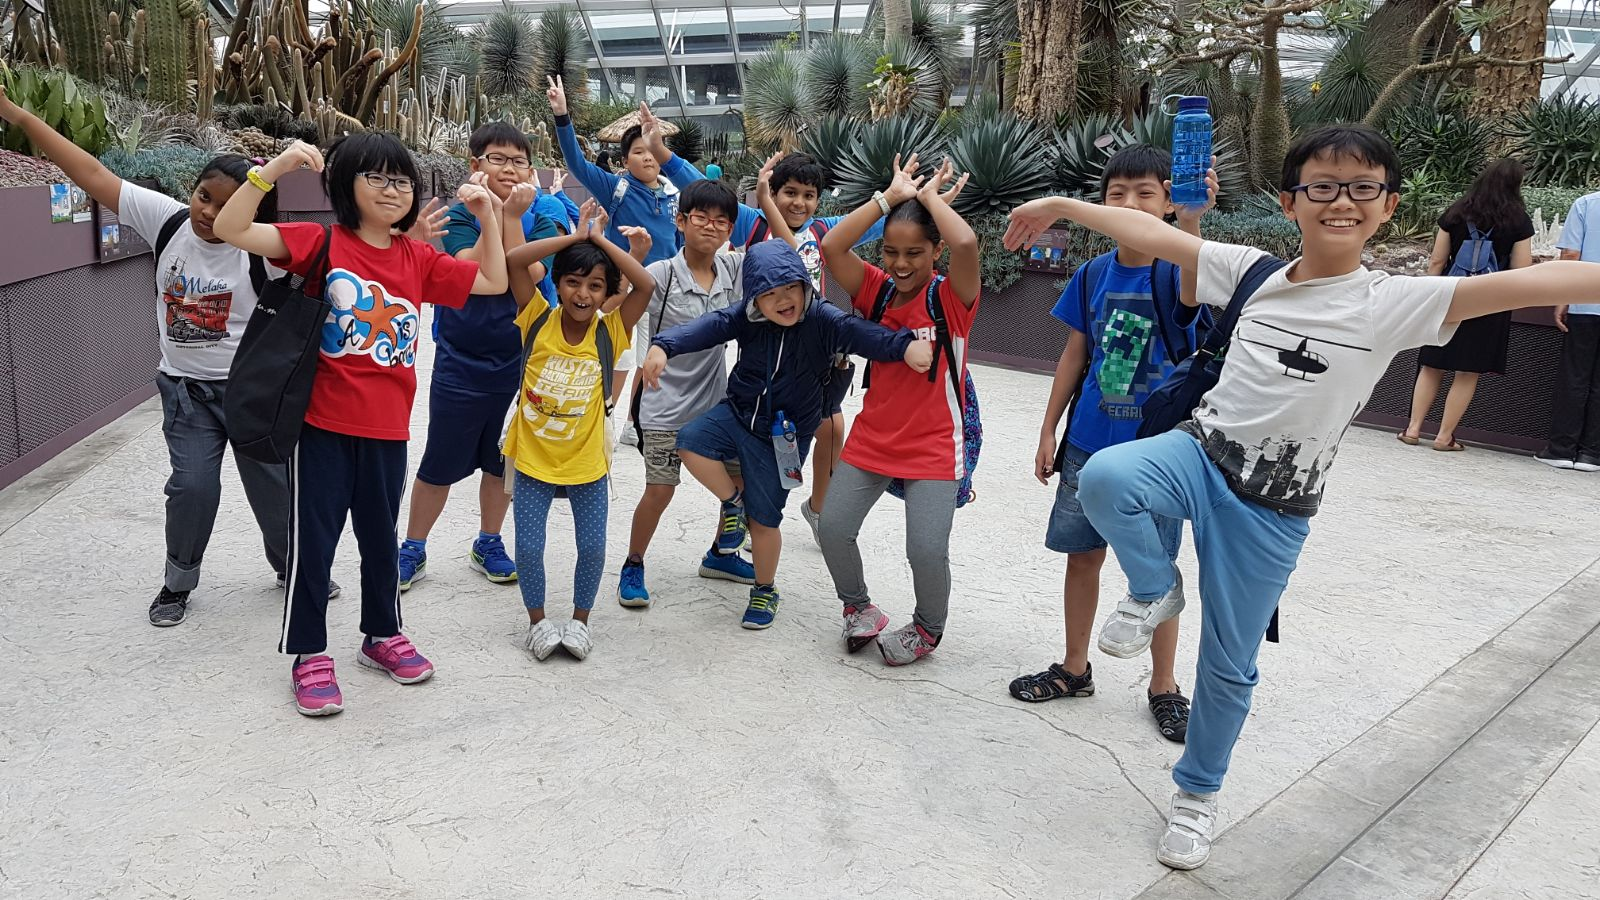 Excursion to Gardens by the Bay